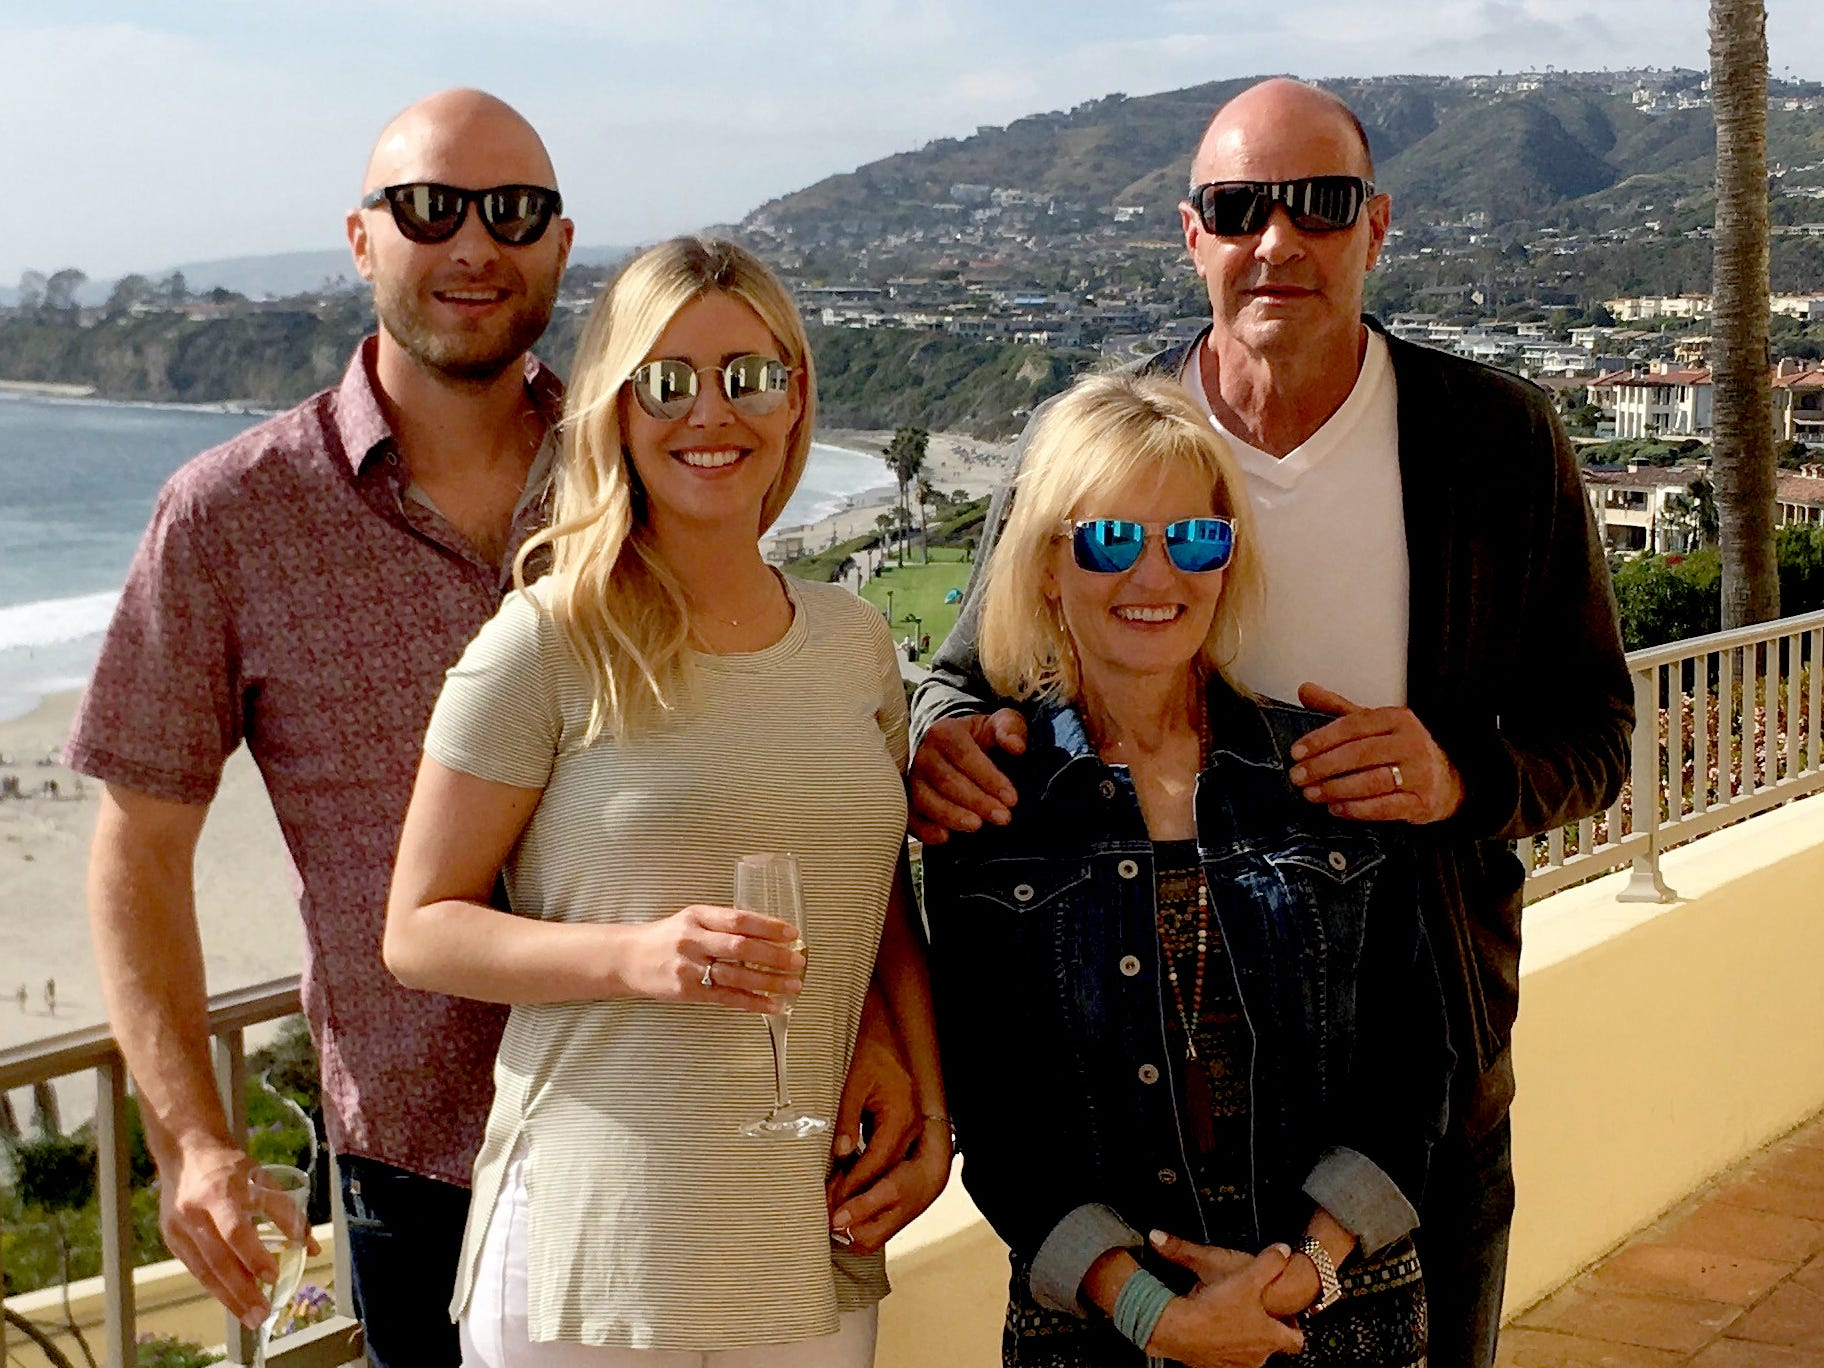 A family photo shows Gibson with his wife JoAnn, along with son Kirk Robert and his girlfriend Skylar.